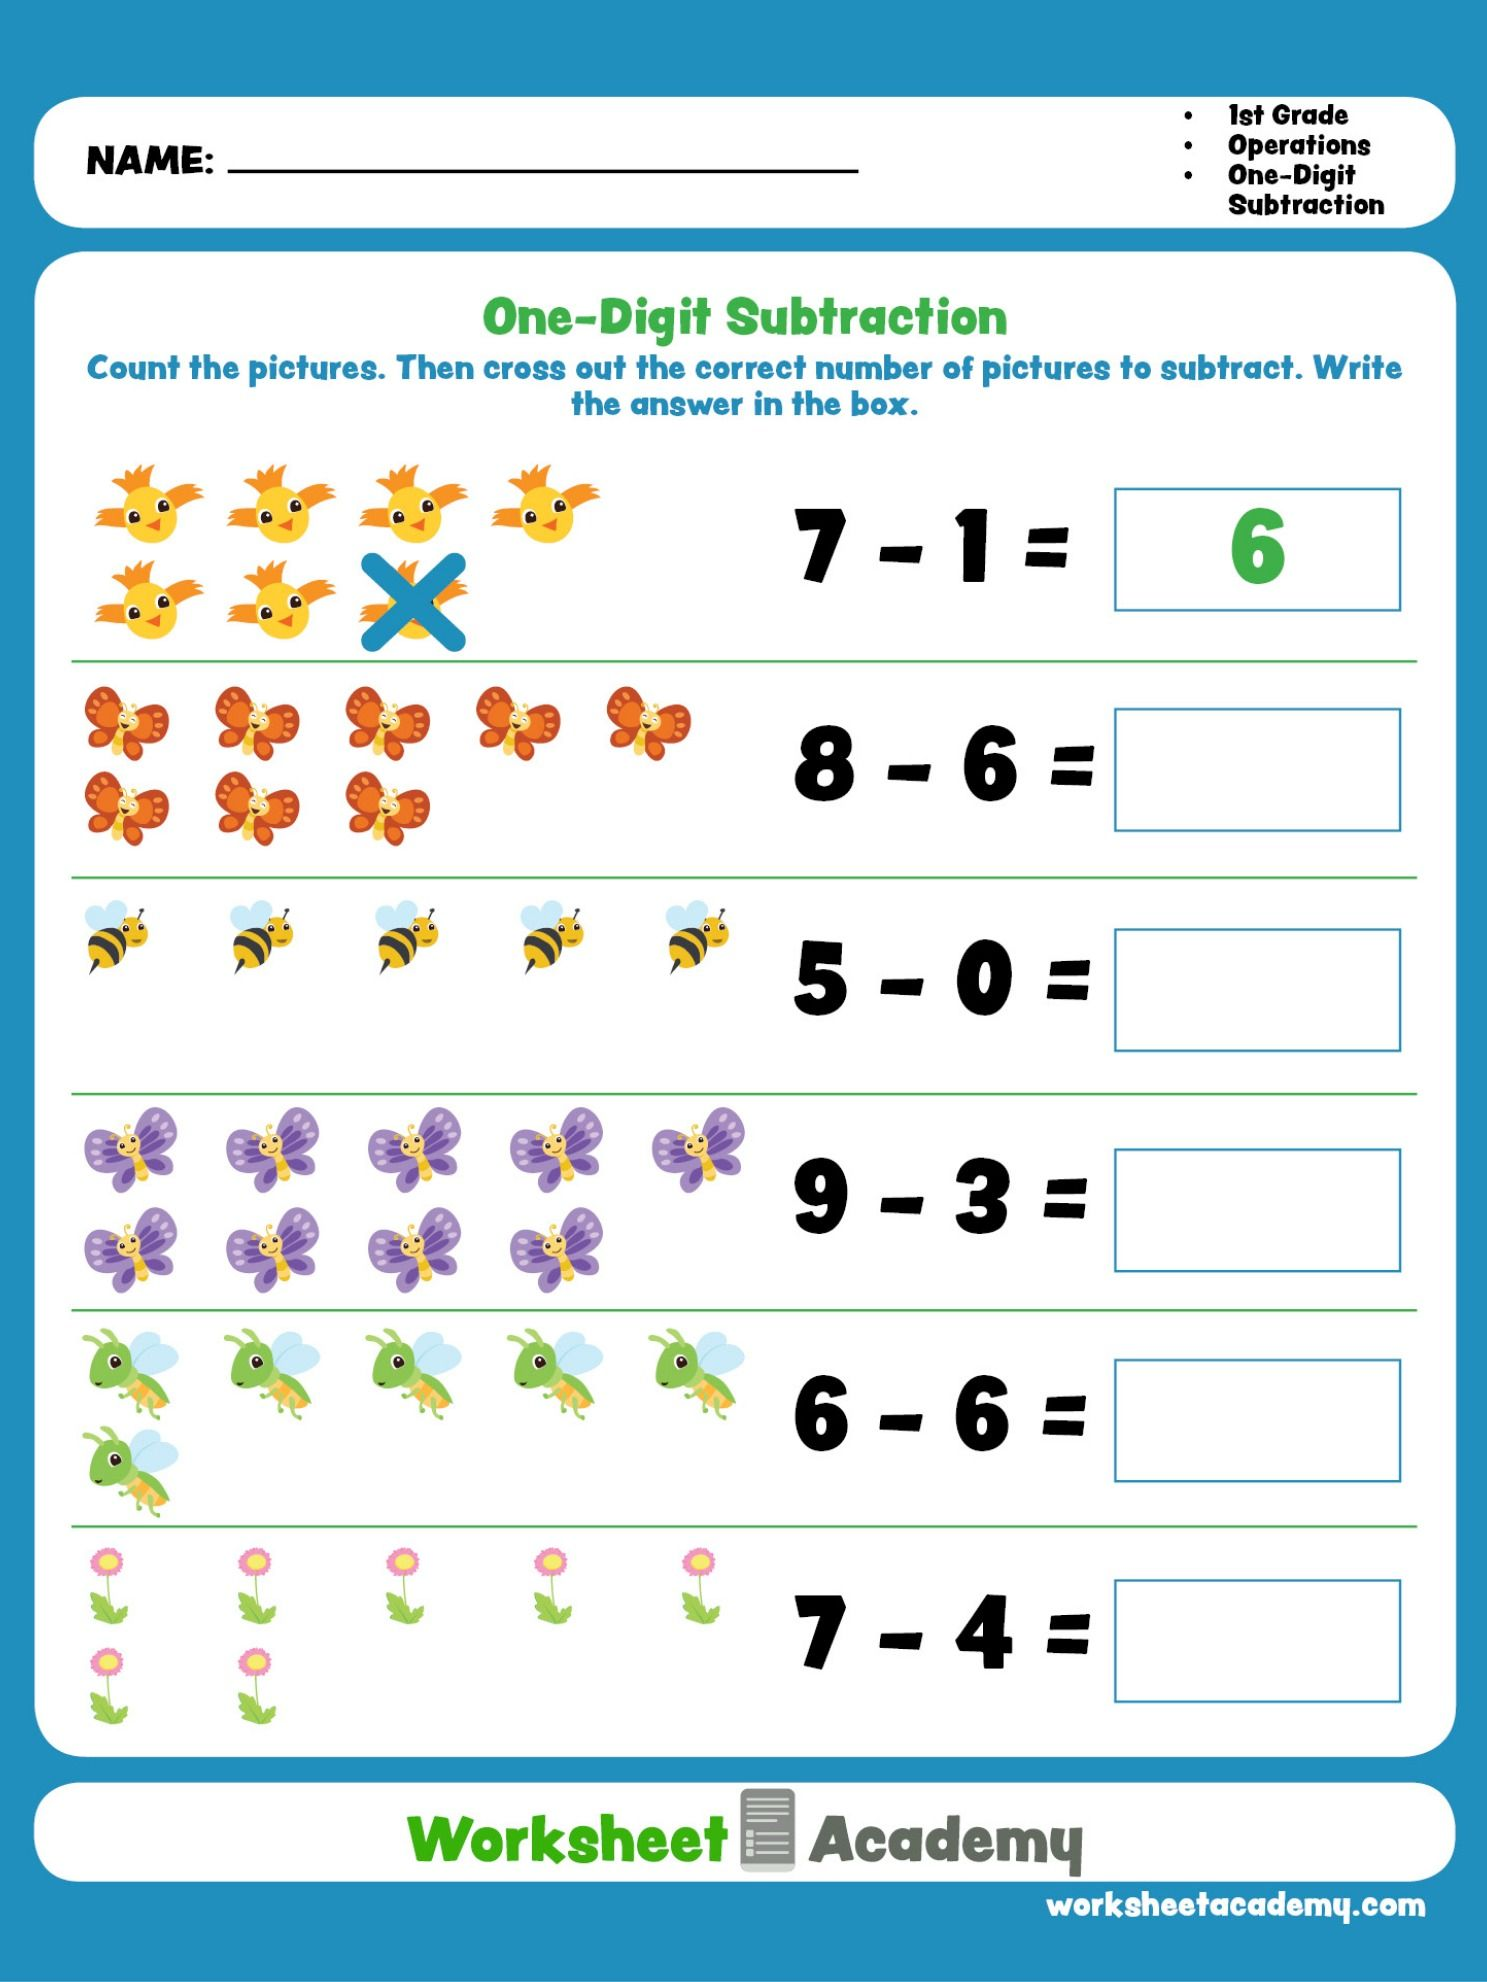 Education Subtraction Worksheets   Printable Worksheets and Activities for  Teachers [ 1982 x 1487 Pixel ]